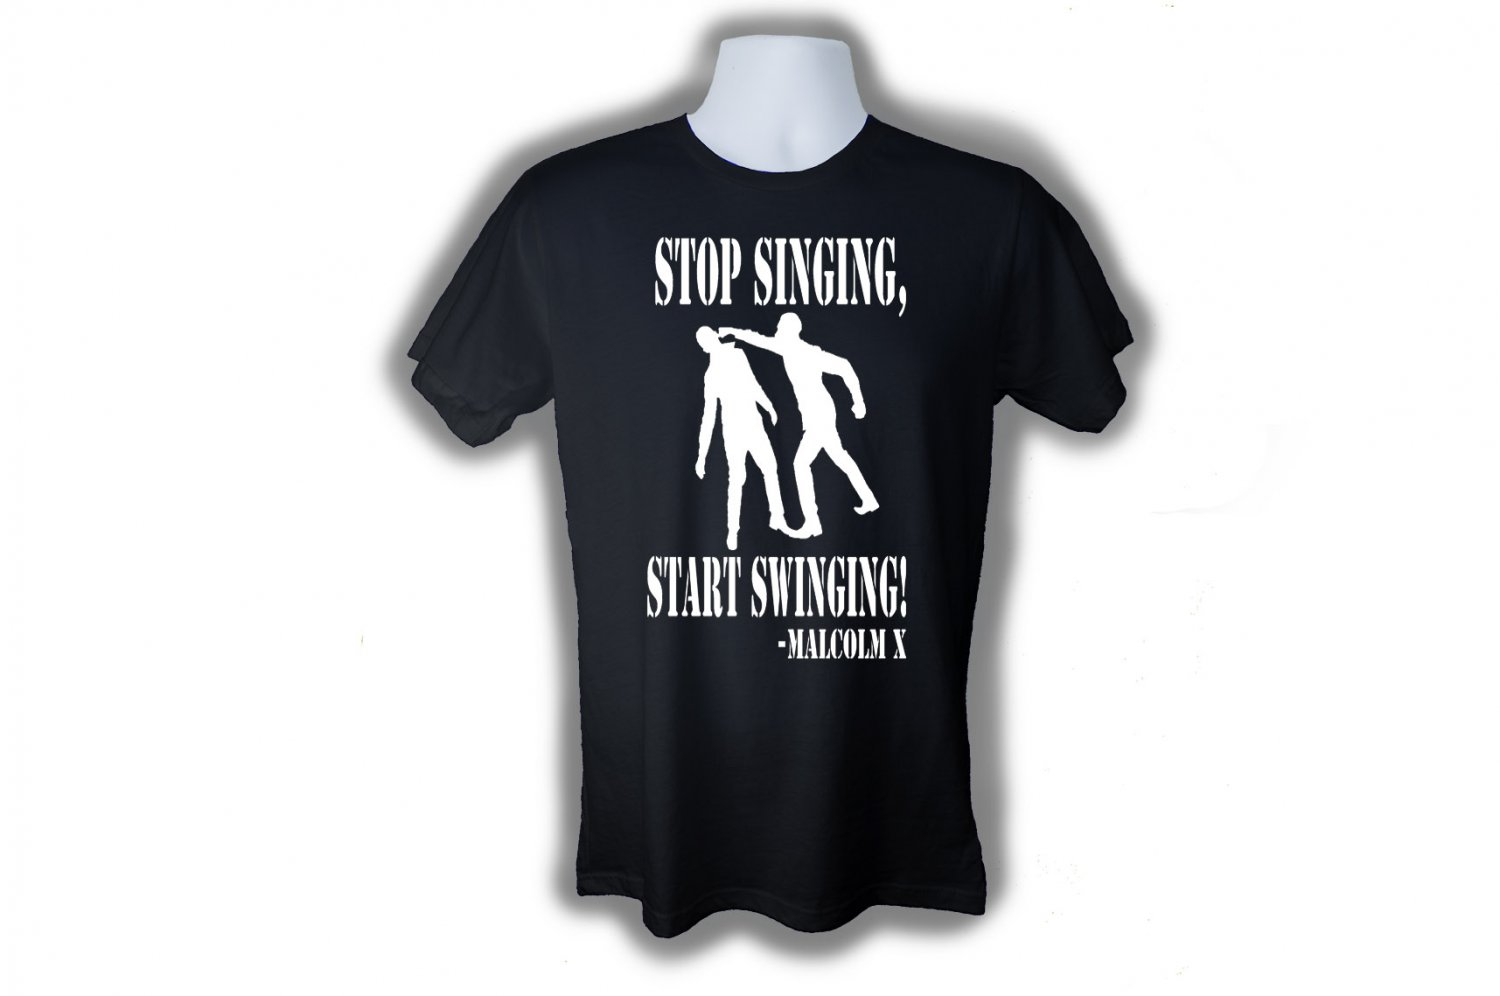 STOP SINGING AND START SWINGING MALCOLM X T-SHIRT (3XL)